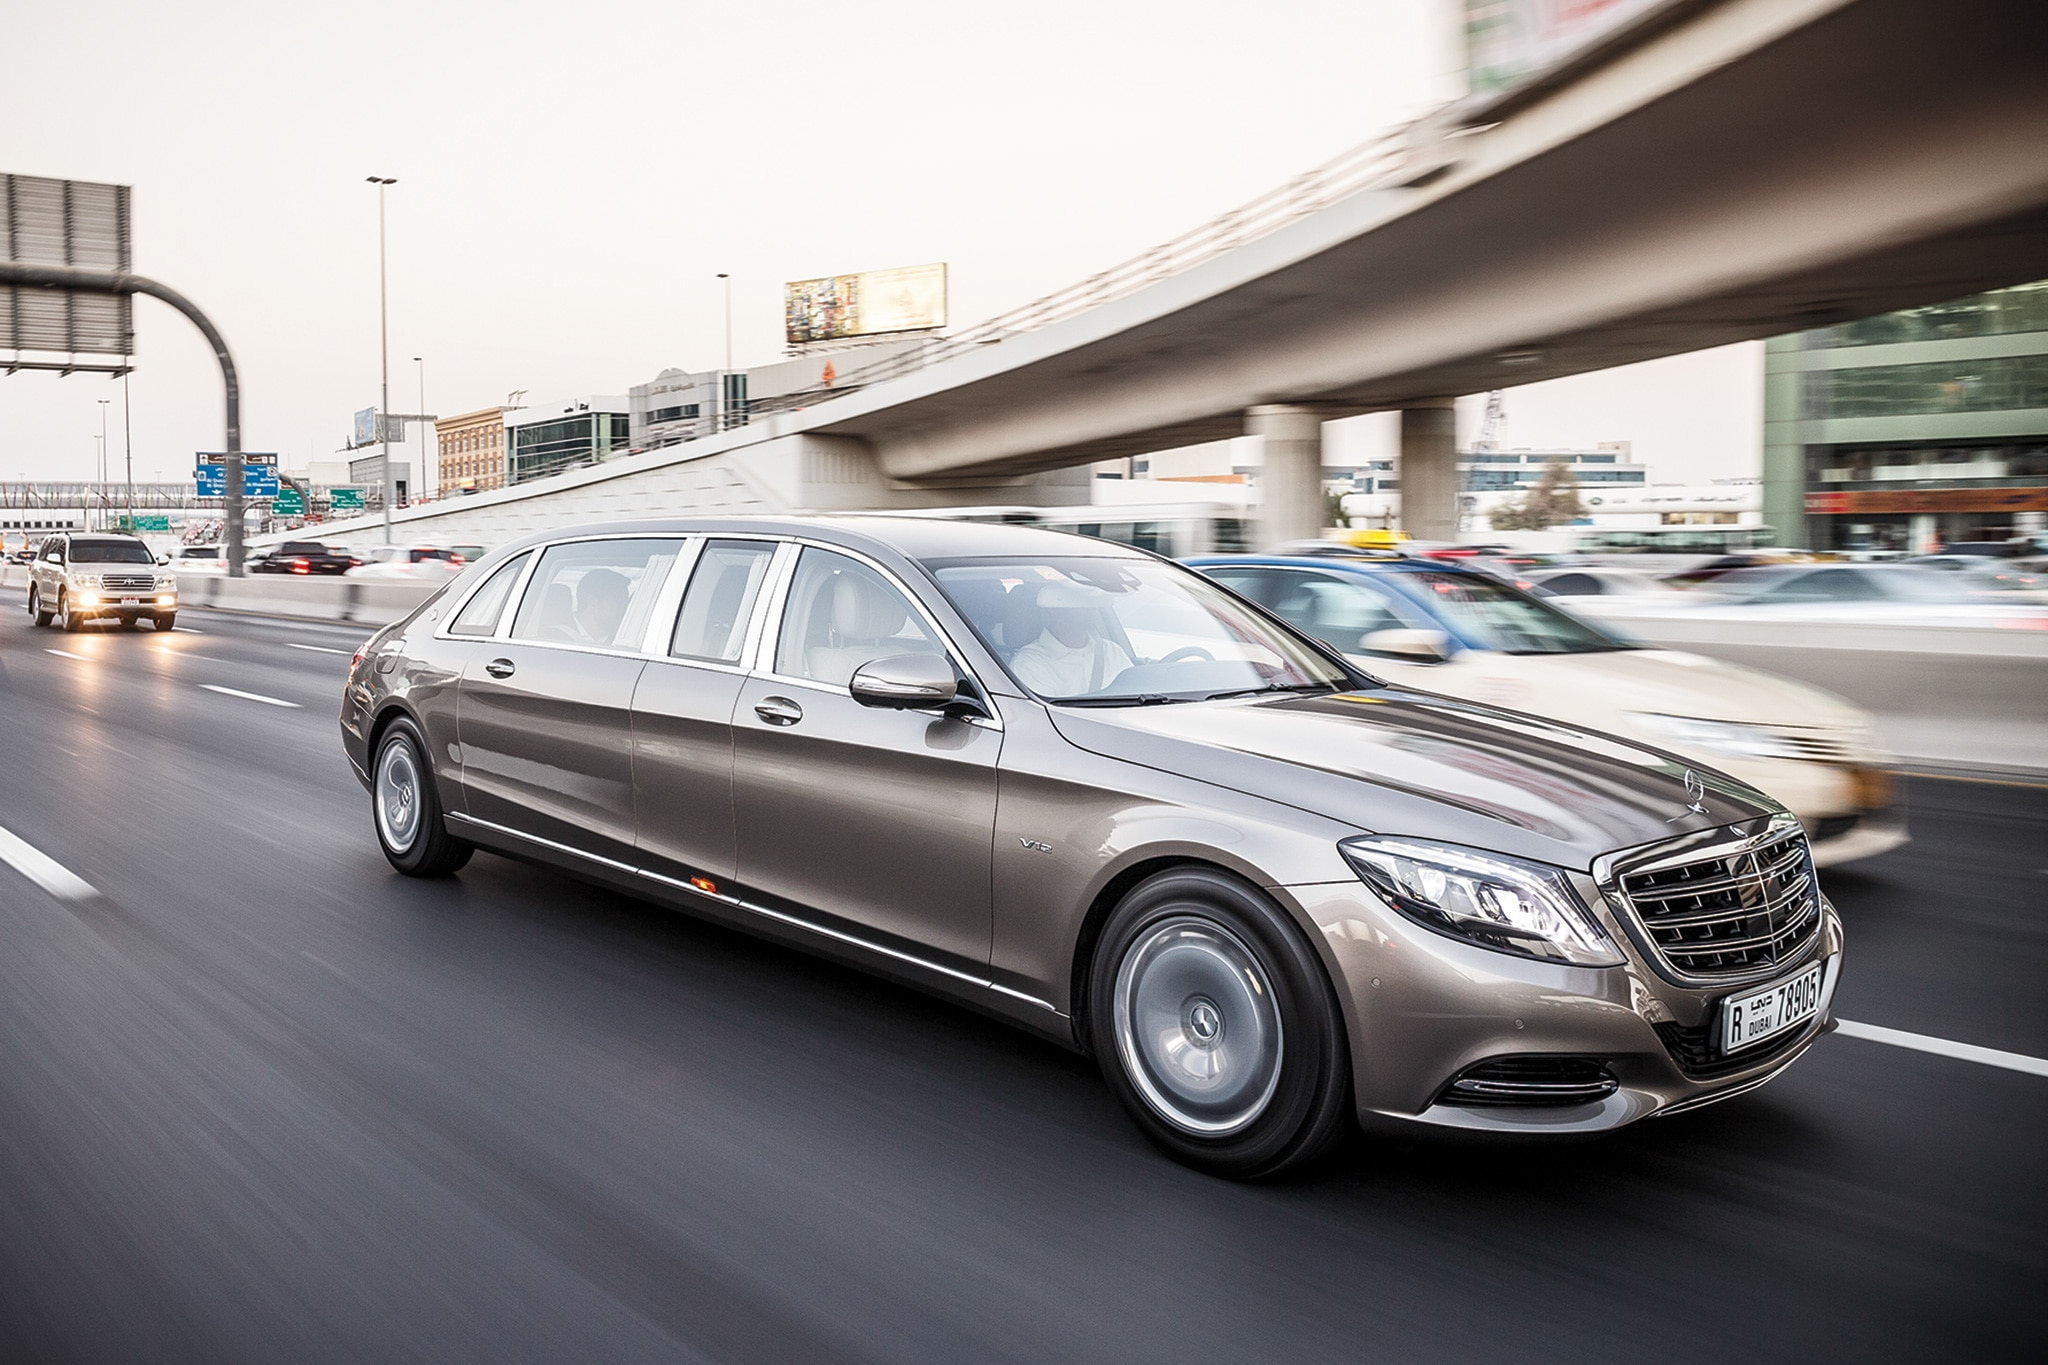 https://st.automobilemag.com/uploads/sites/11/2016/08/2016-Mercedes-Maybach-S600-Pullman-front-three-quarter-in-motion-06.jpg